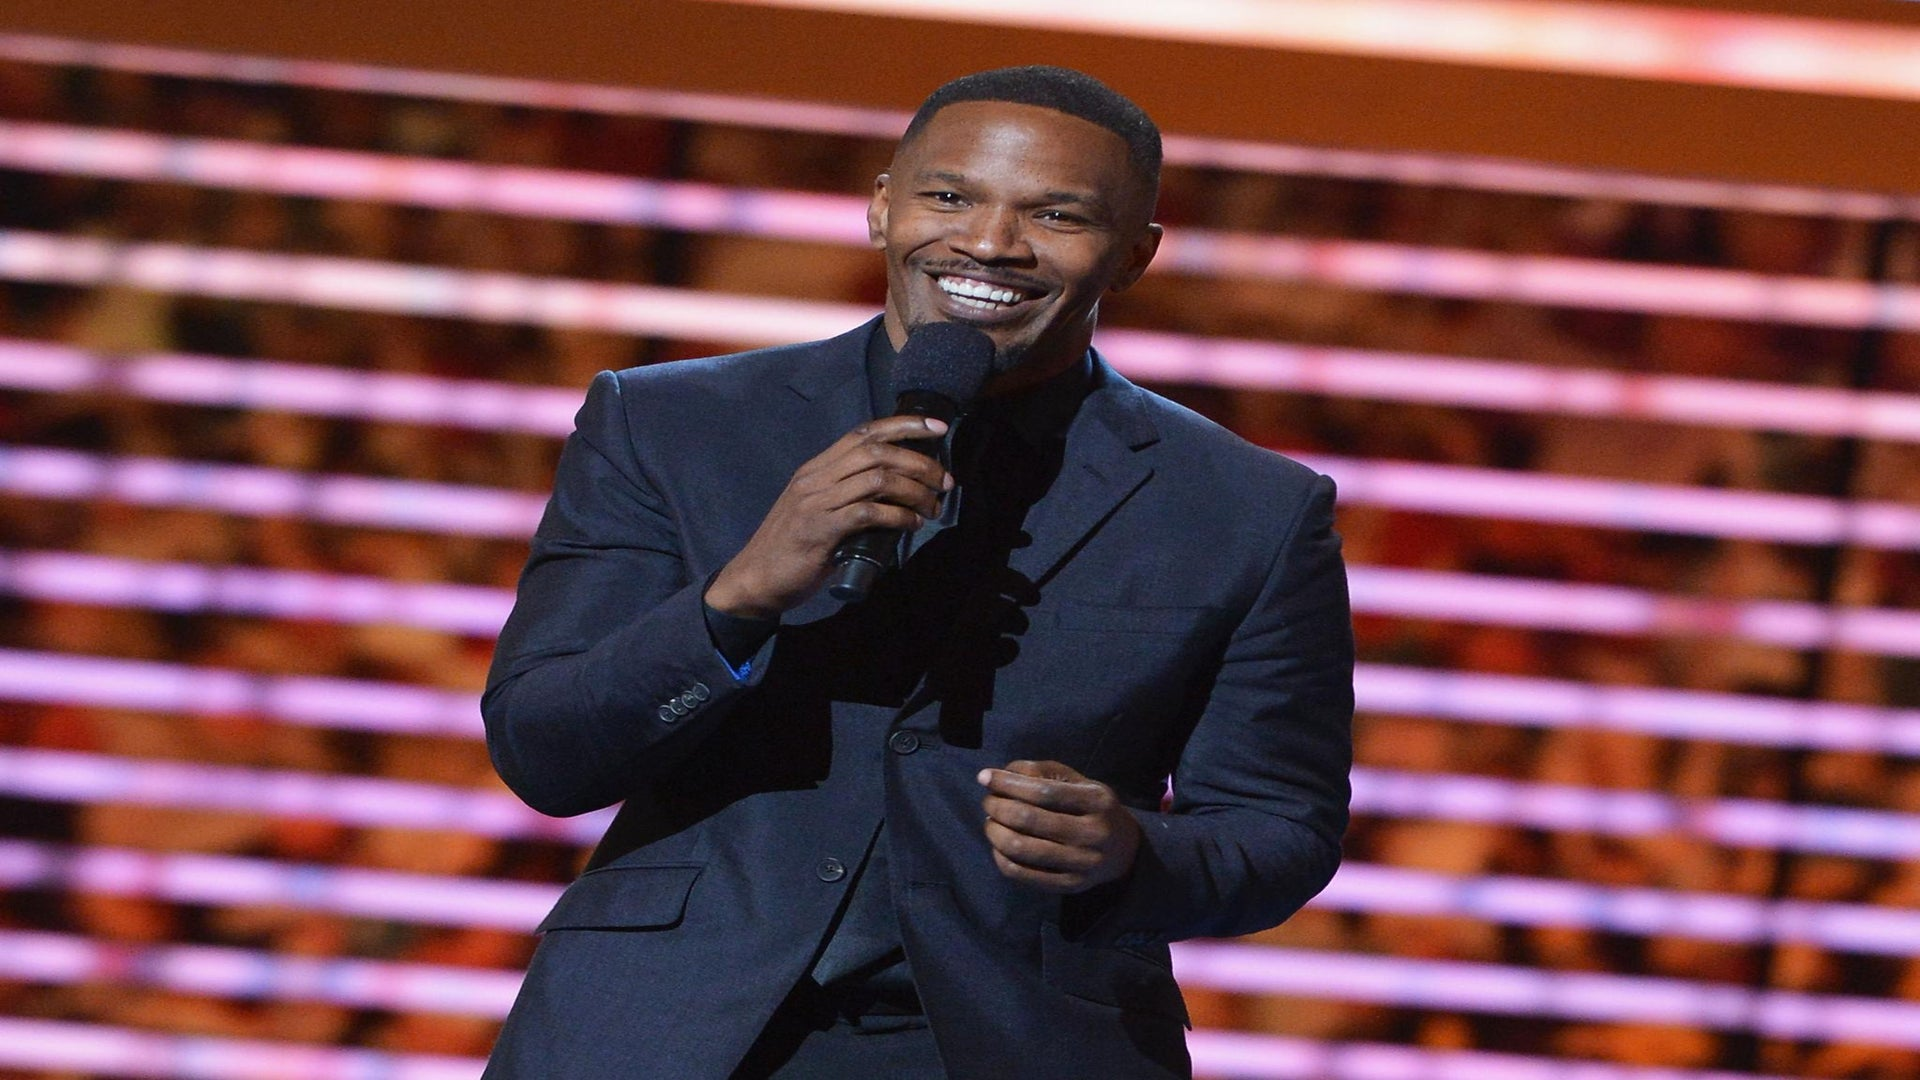 Marvin Gaye's Family Gave Jamie Foxx Their Blessing To Tell His Life Story On TV